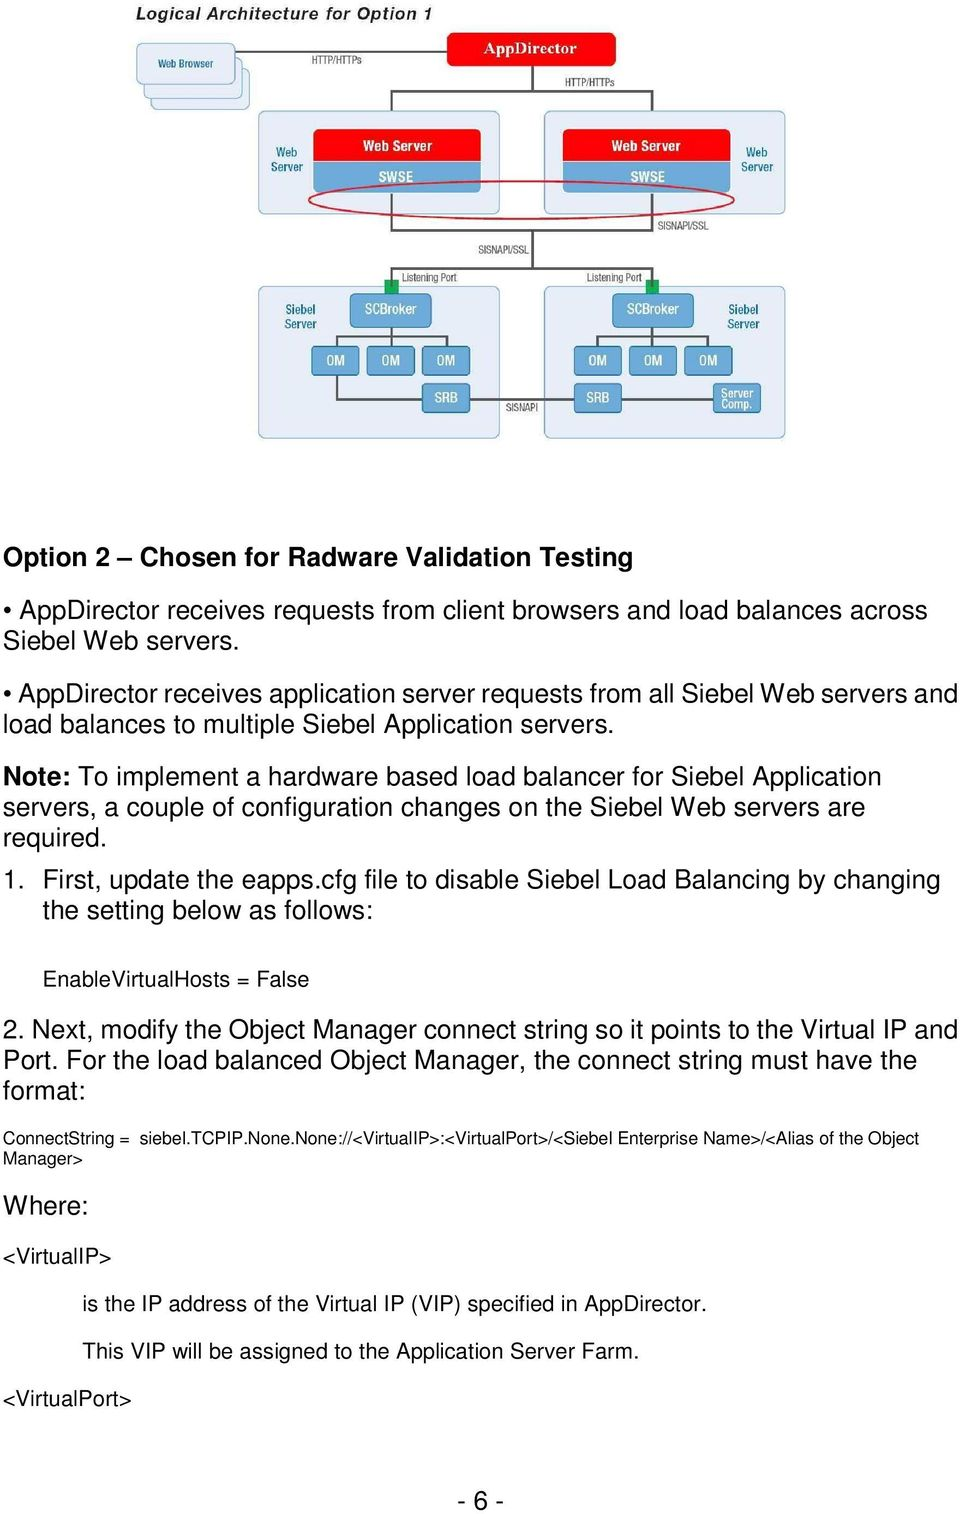 Note: To implement a hardware based load balancer for Siebel Application servers, a couple of configuration changes on the Siebel Web servers are required. 1. First, update the eapps.